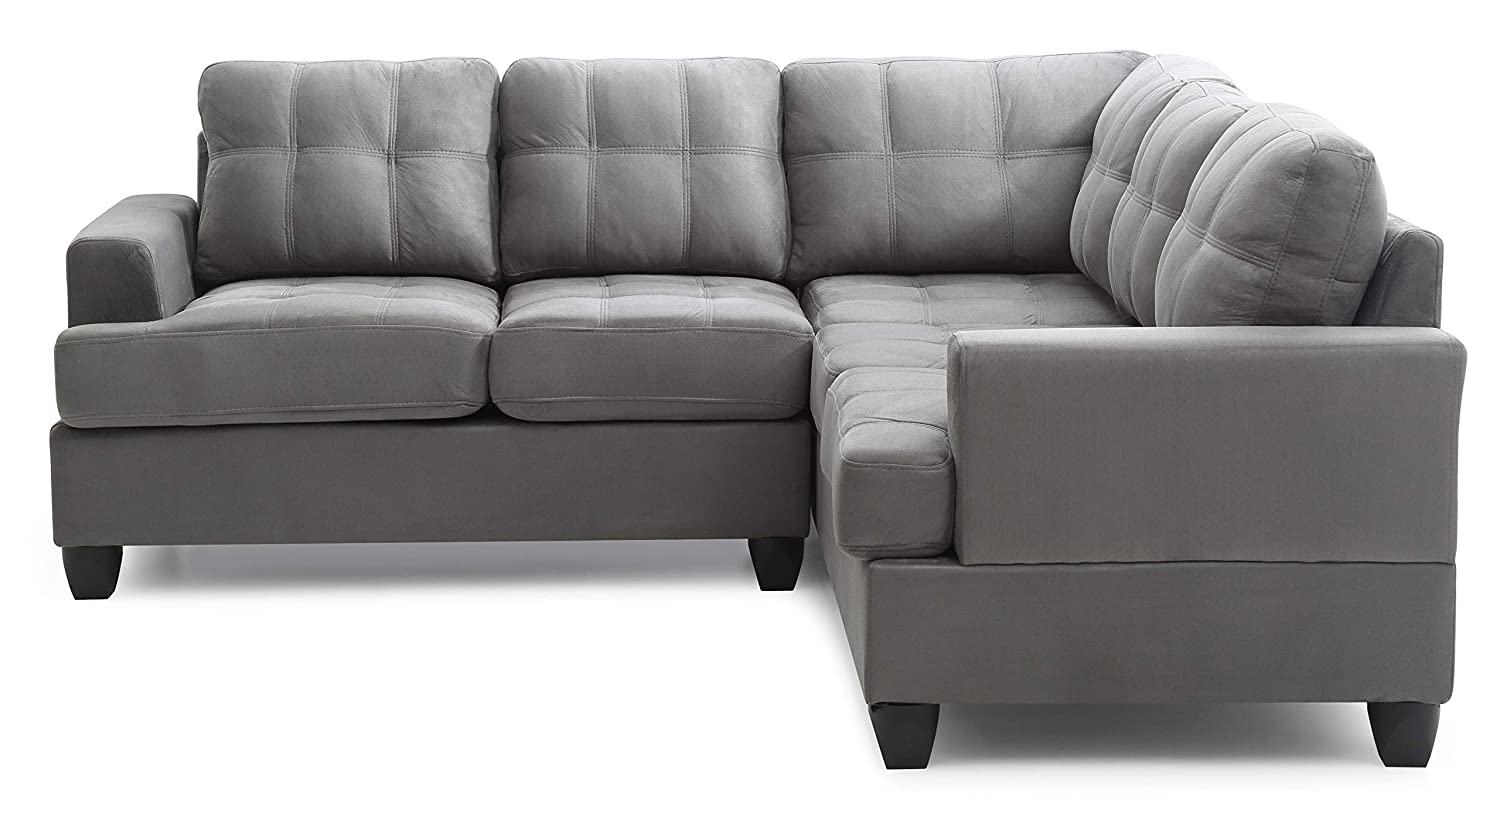 Glory Furniture G513B-SC Sectional Sofa, Grey, 2 boxes